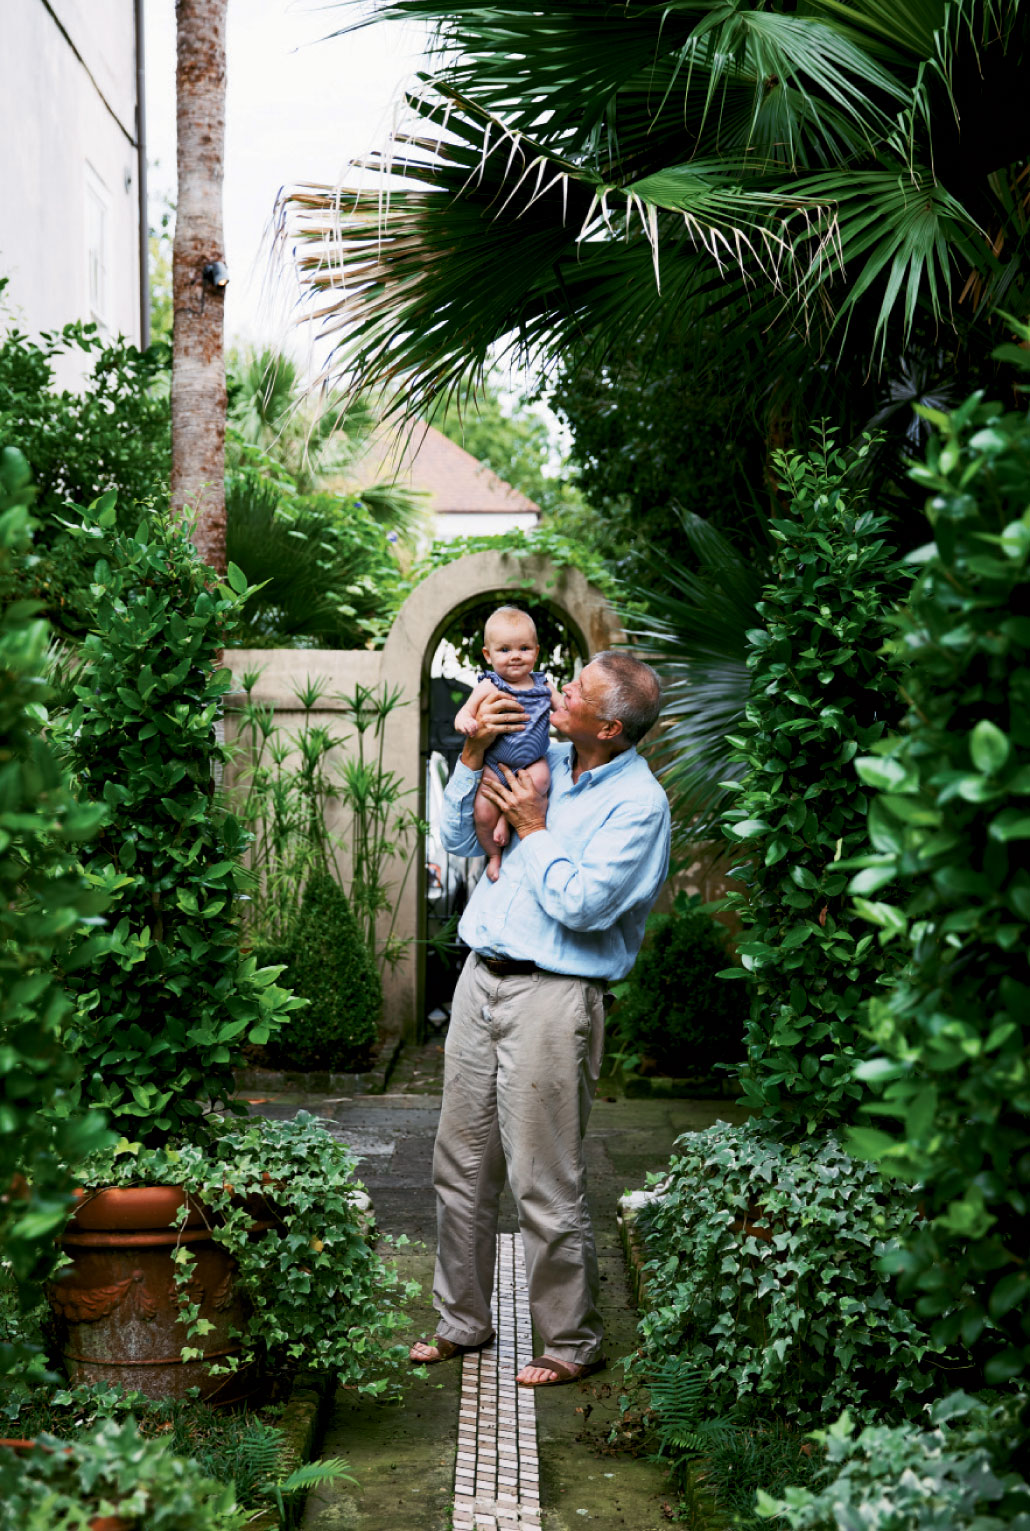 Grandbaby Scout (daughter of Gervais and husband Anthony Del Porto) brings new joy and inspiration to her painter and poet grandparents.